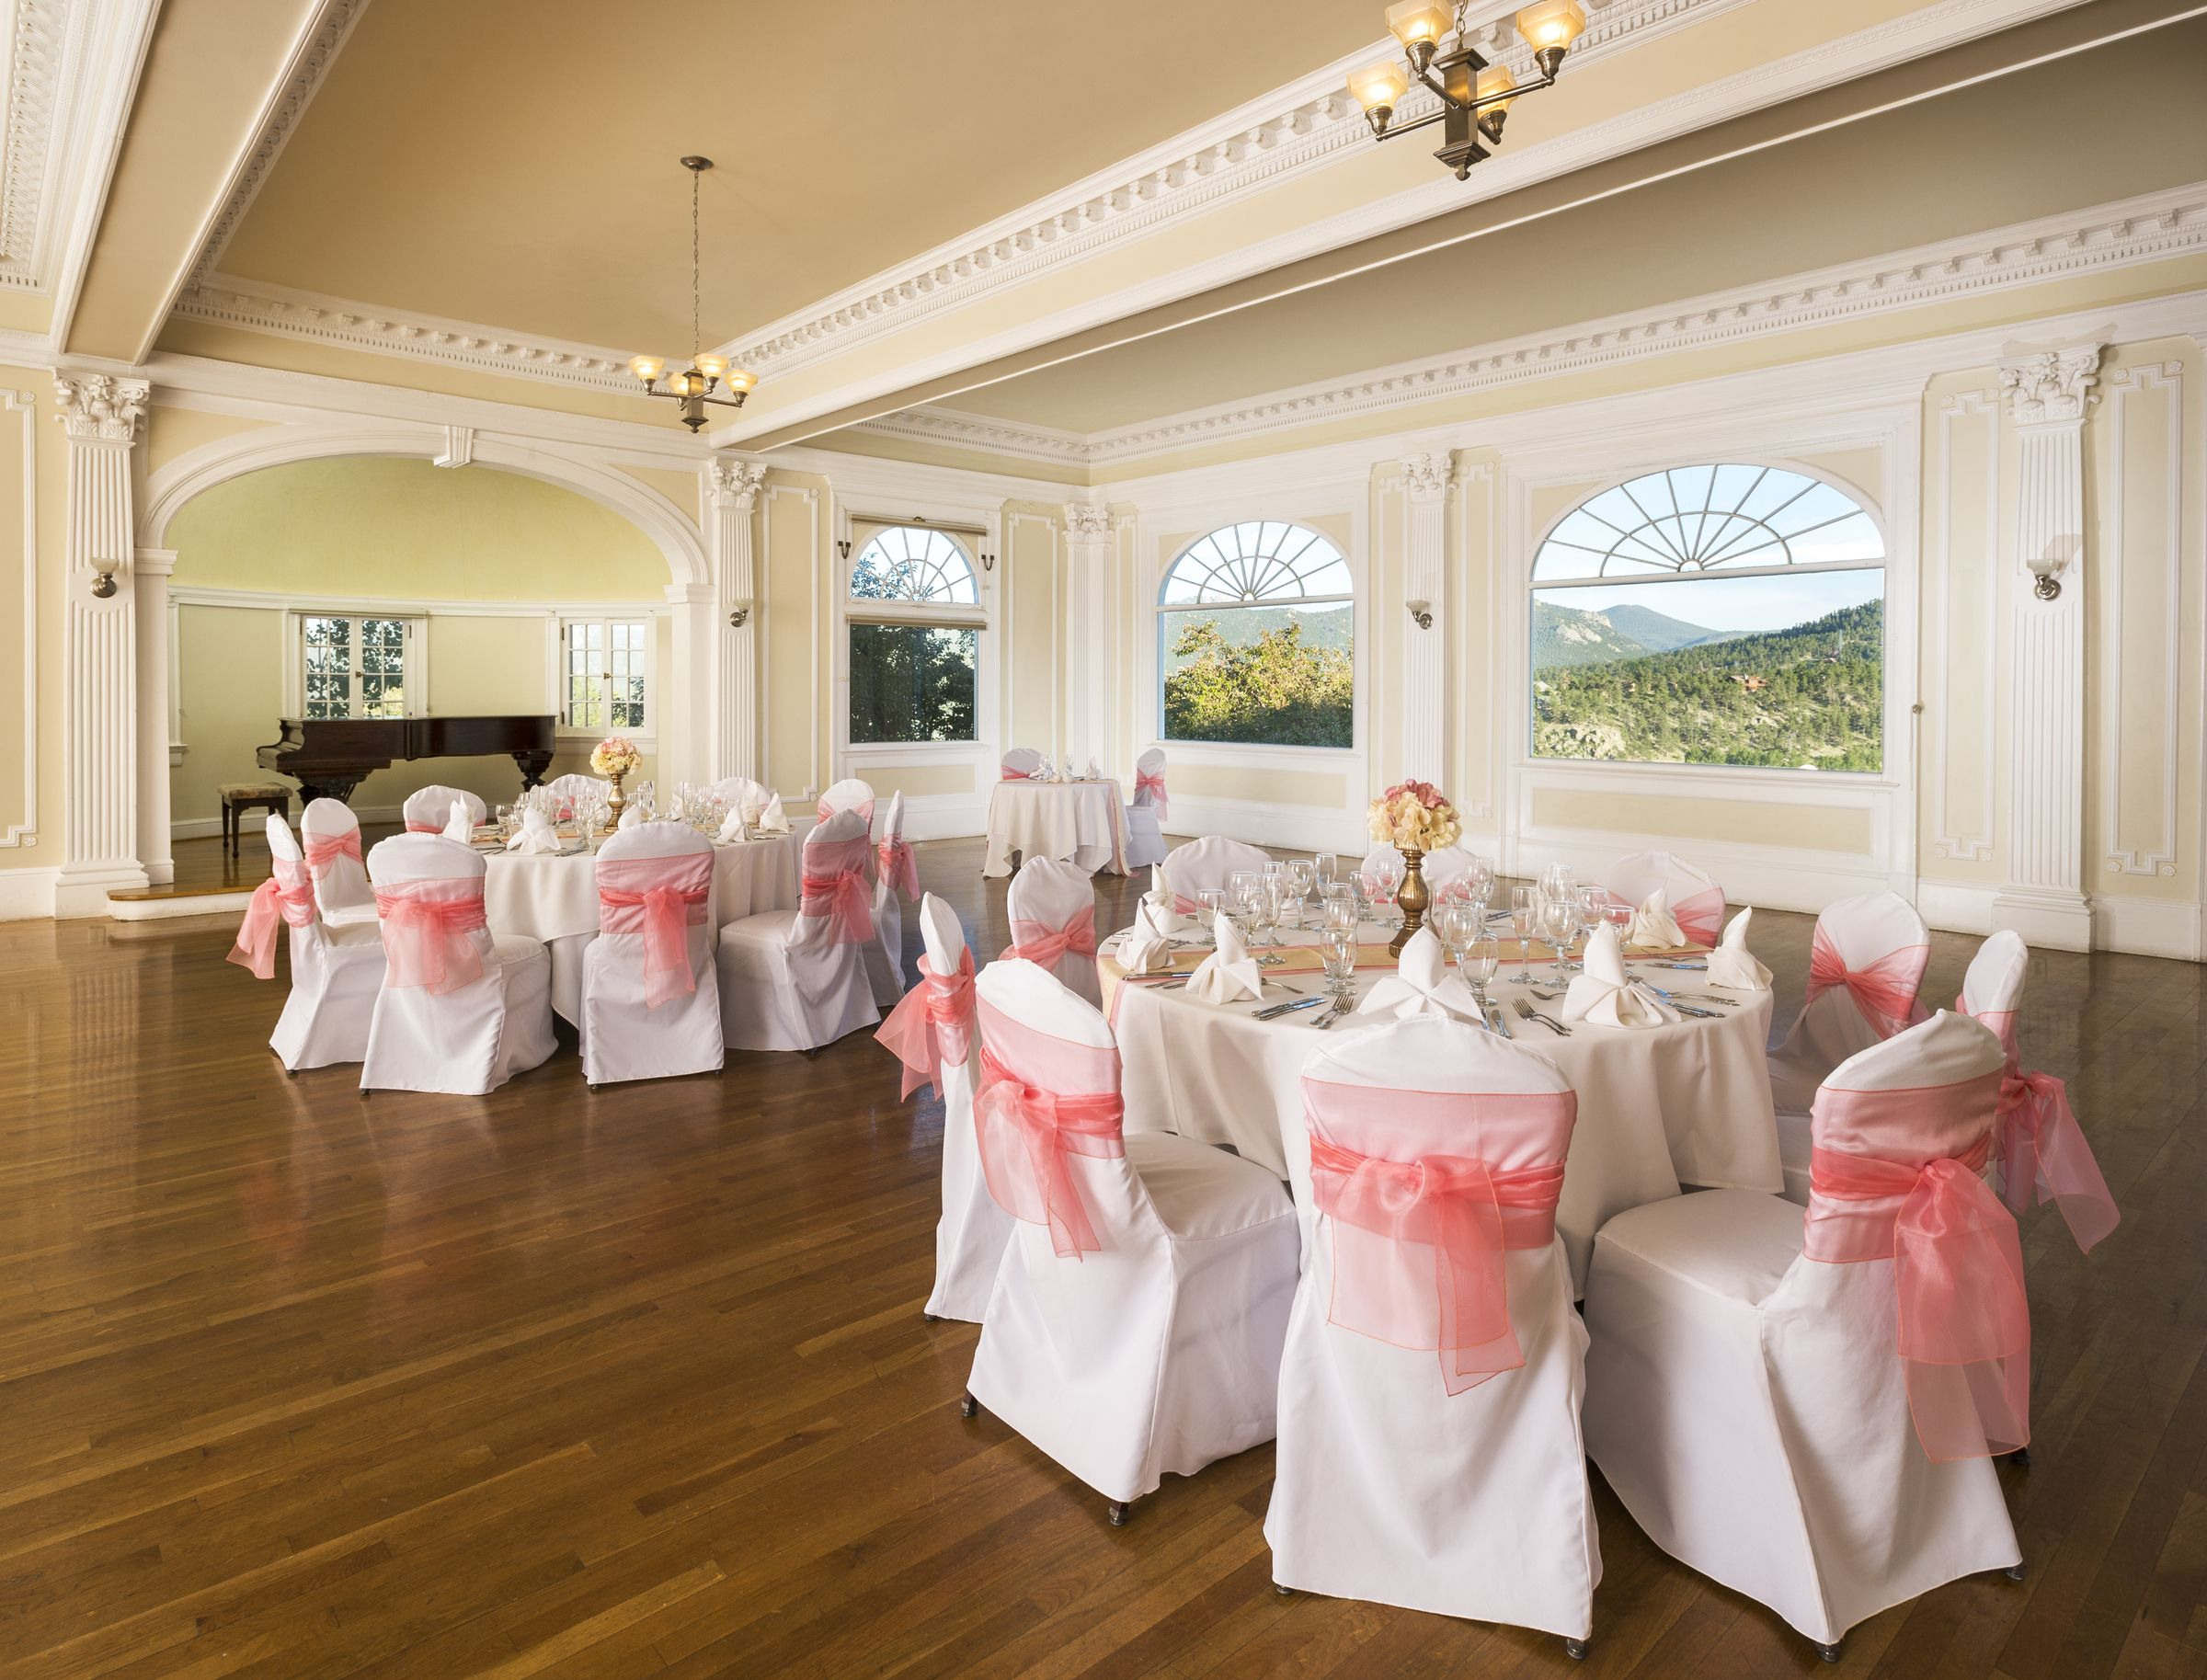 Indoor Wedding Reception Venue - Music Room Stanley